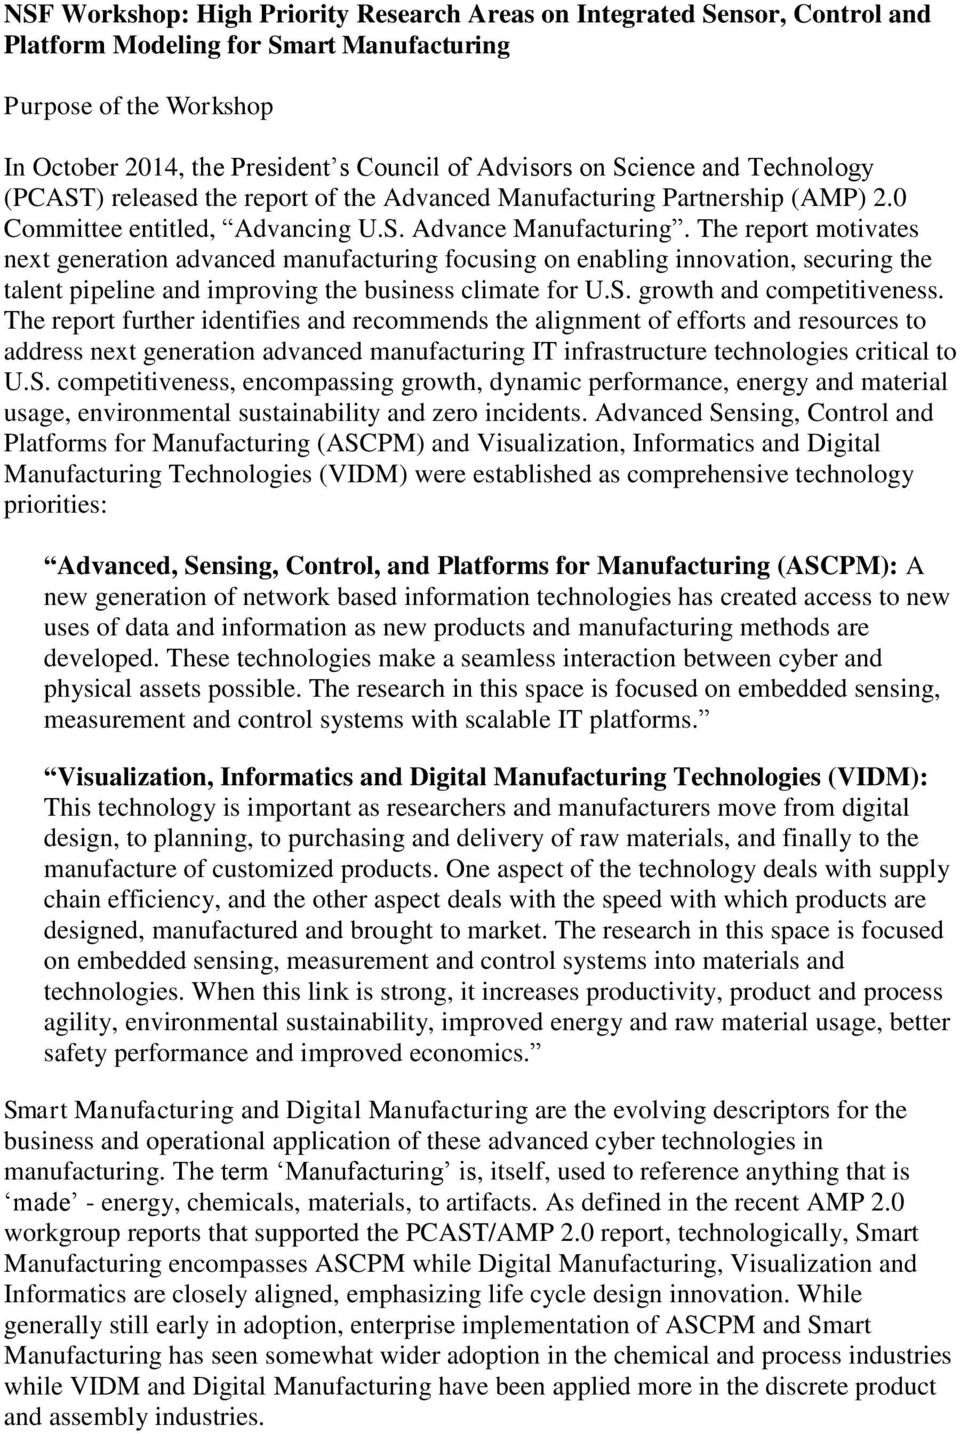 The report motivates next generation advanced manufacturing focusing on enabling innovation, securing the talent pipeline and improving the business climate for U.S. growth and competitiveness.